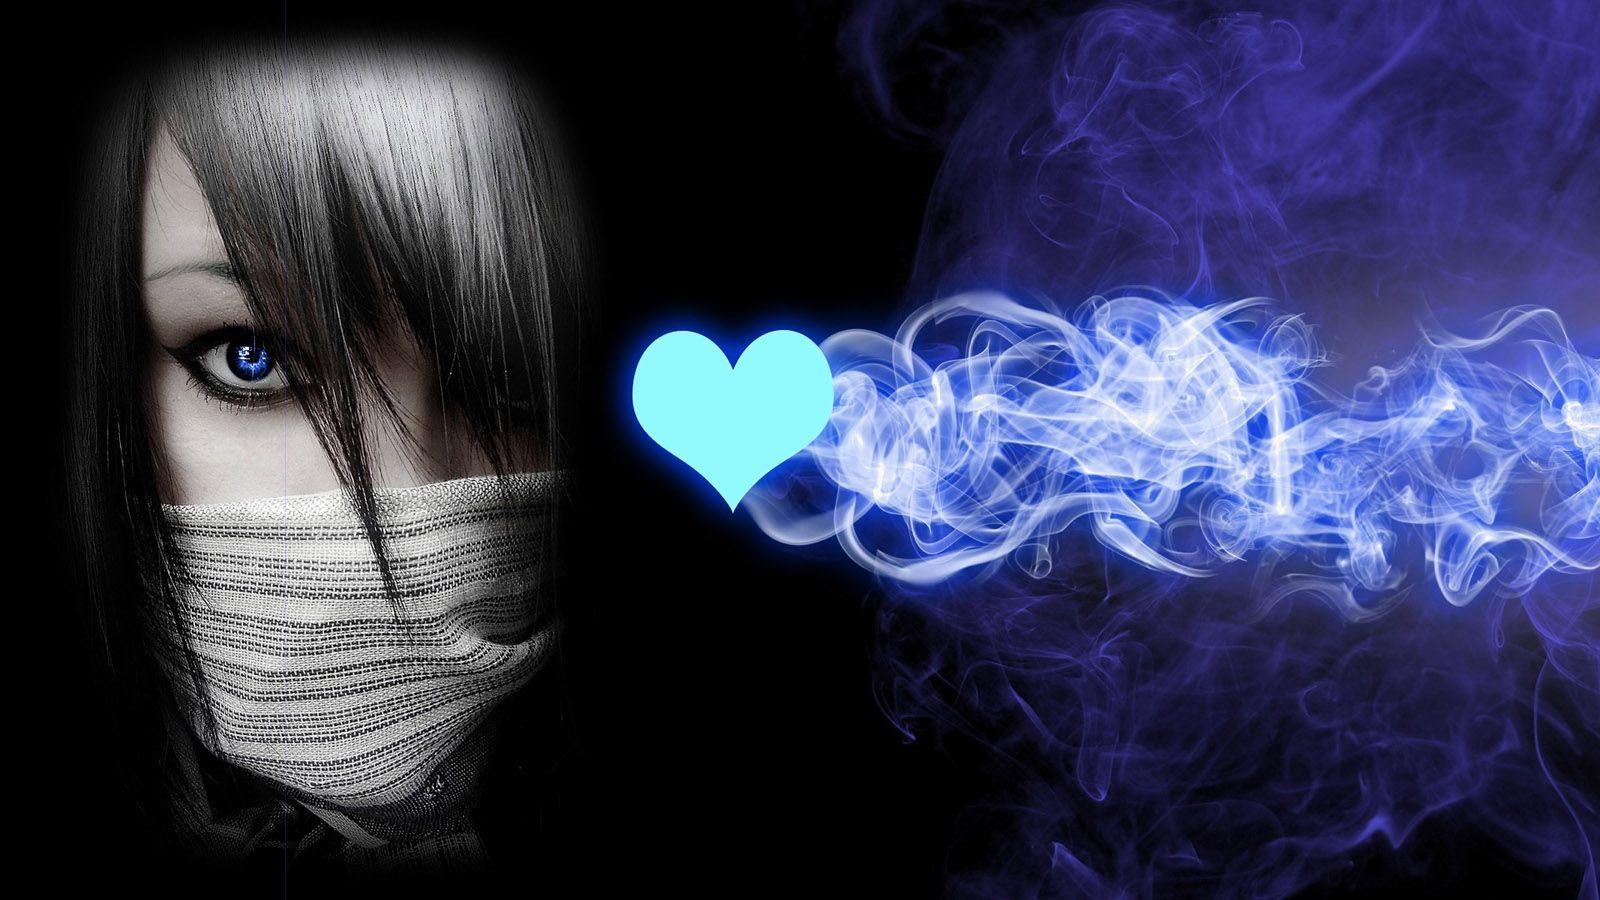 Emo Love Wallpaper For Pc : Emo Love Wallpapers 2016 - Wallpaper cave